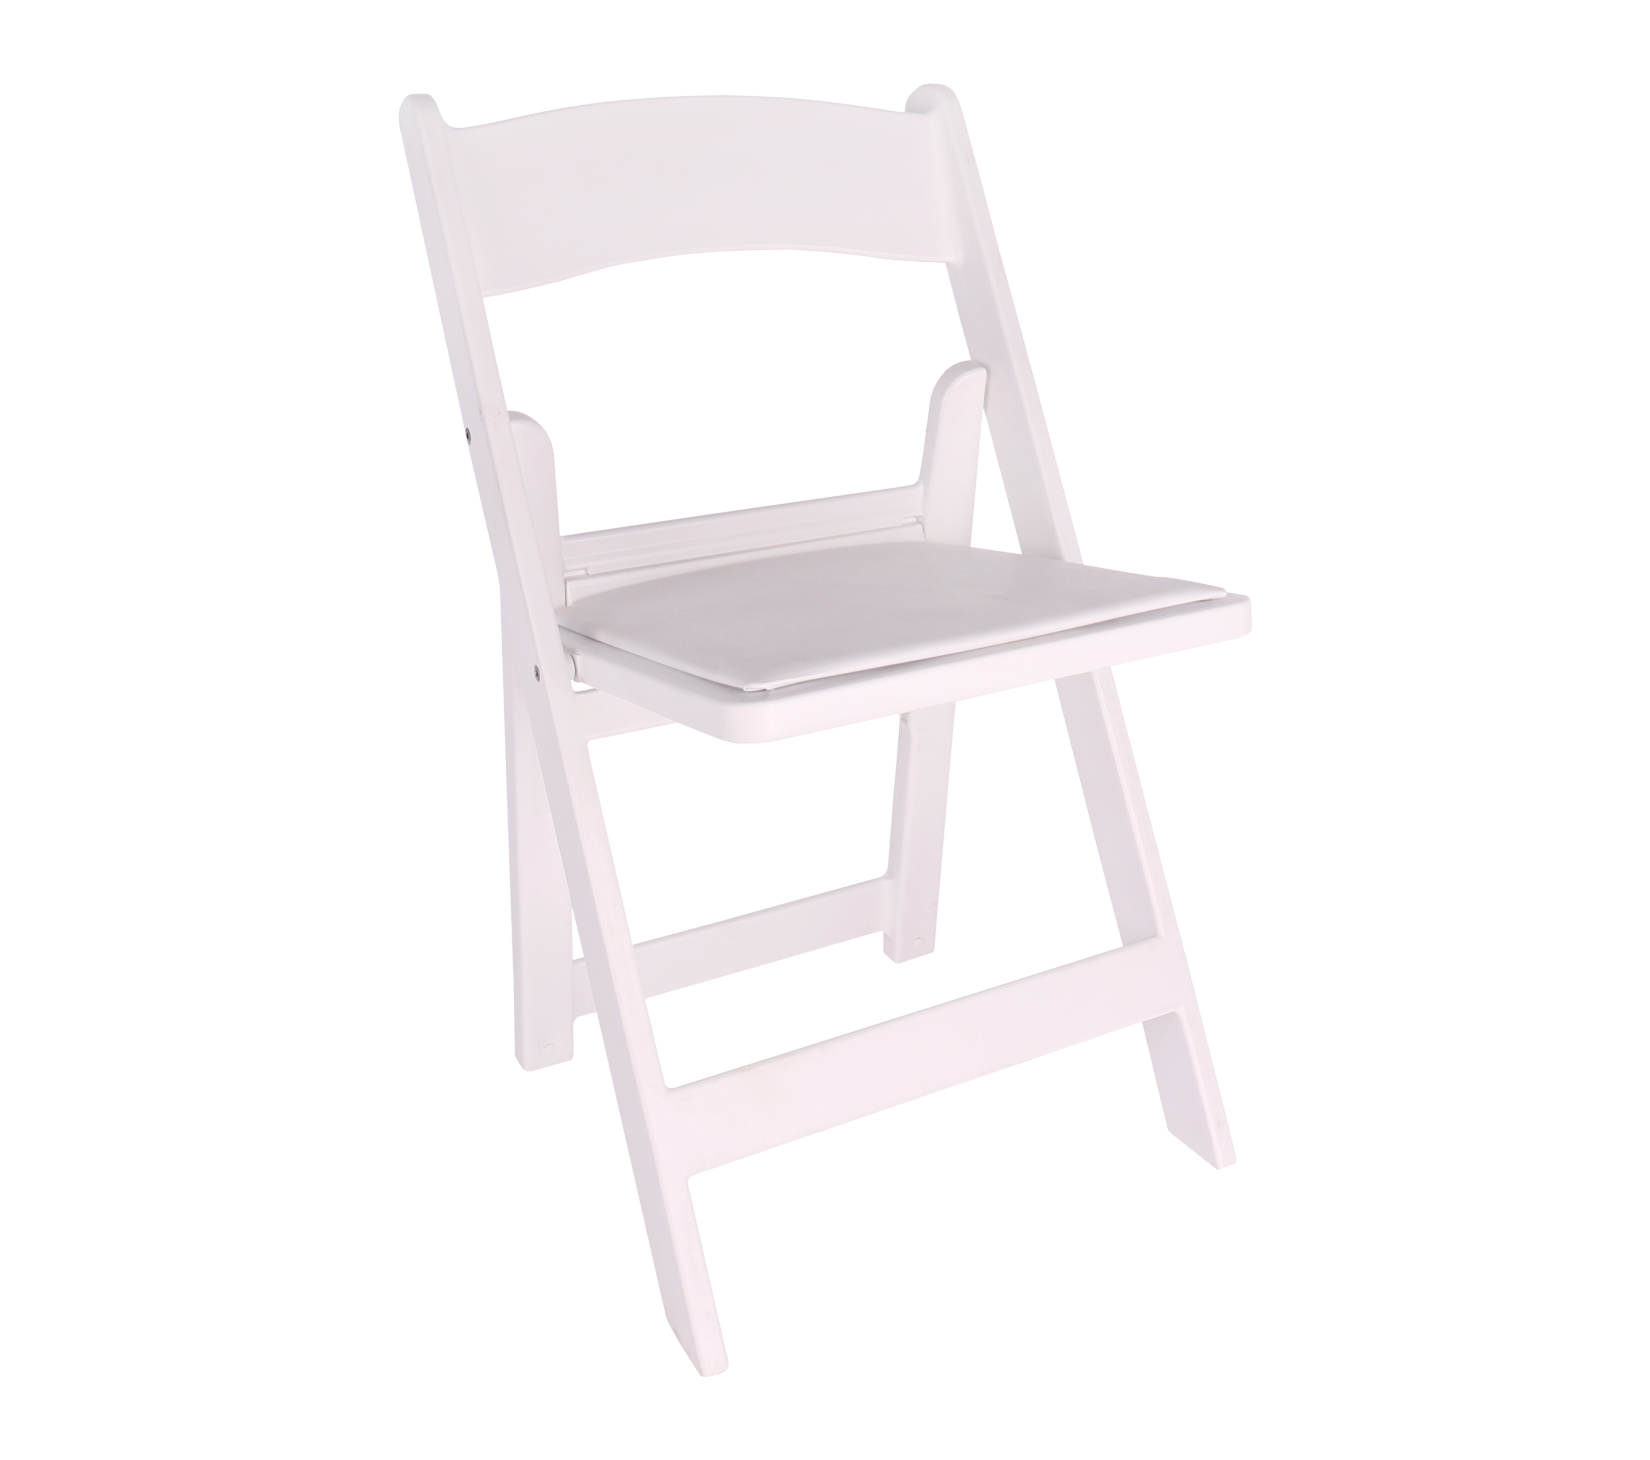 Swell Chair White Resin Folding Chair With Padded Seat Squirreltailoven Fun Painted Chair Ideas Images Squirreltailovenorg